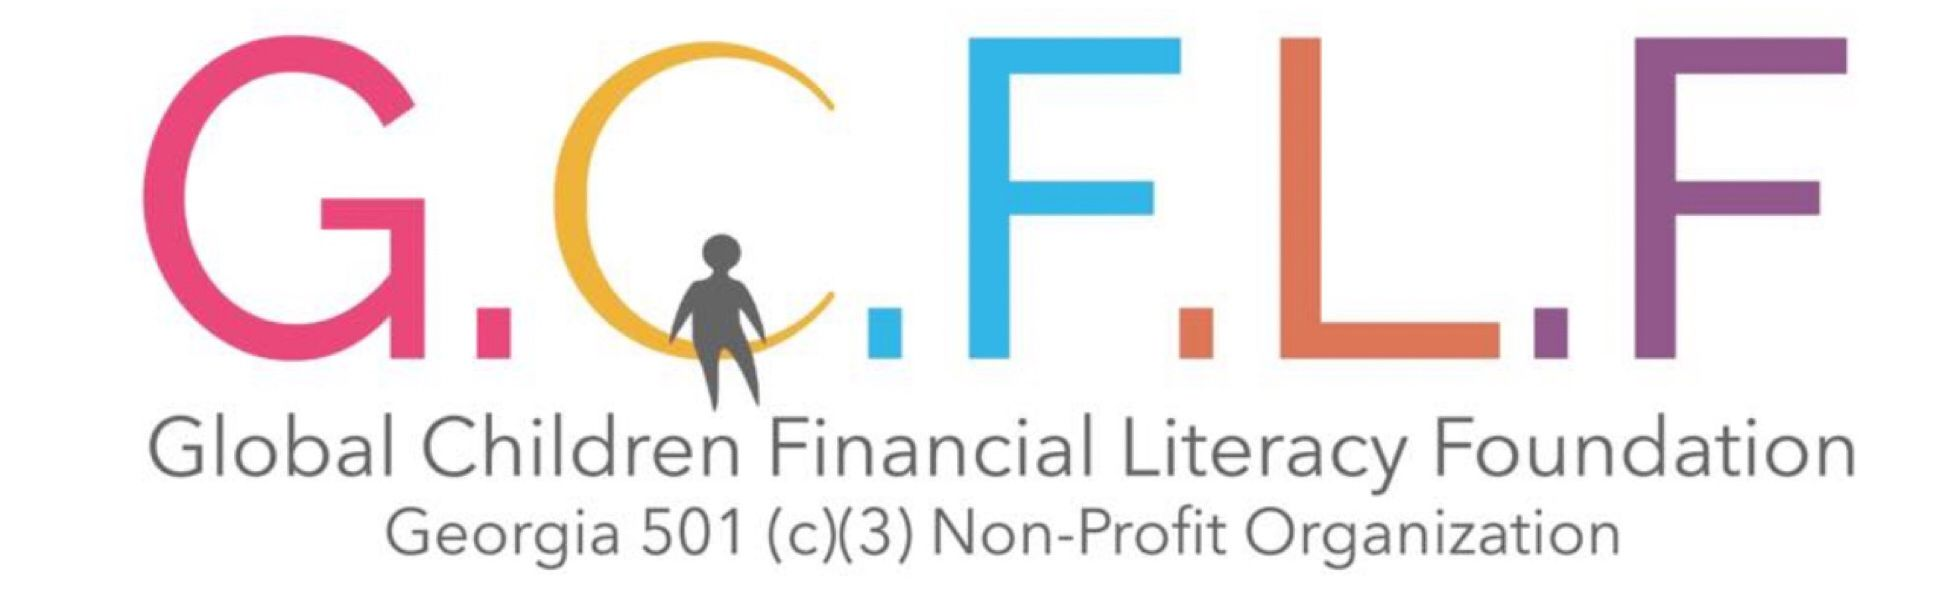 Global Children Financial Literacy Foundation